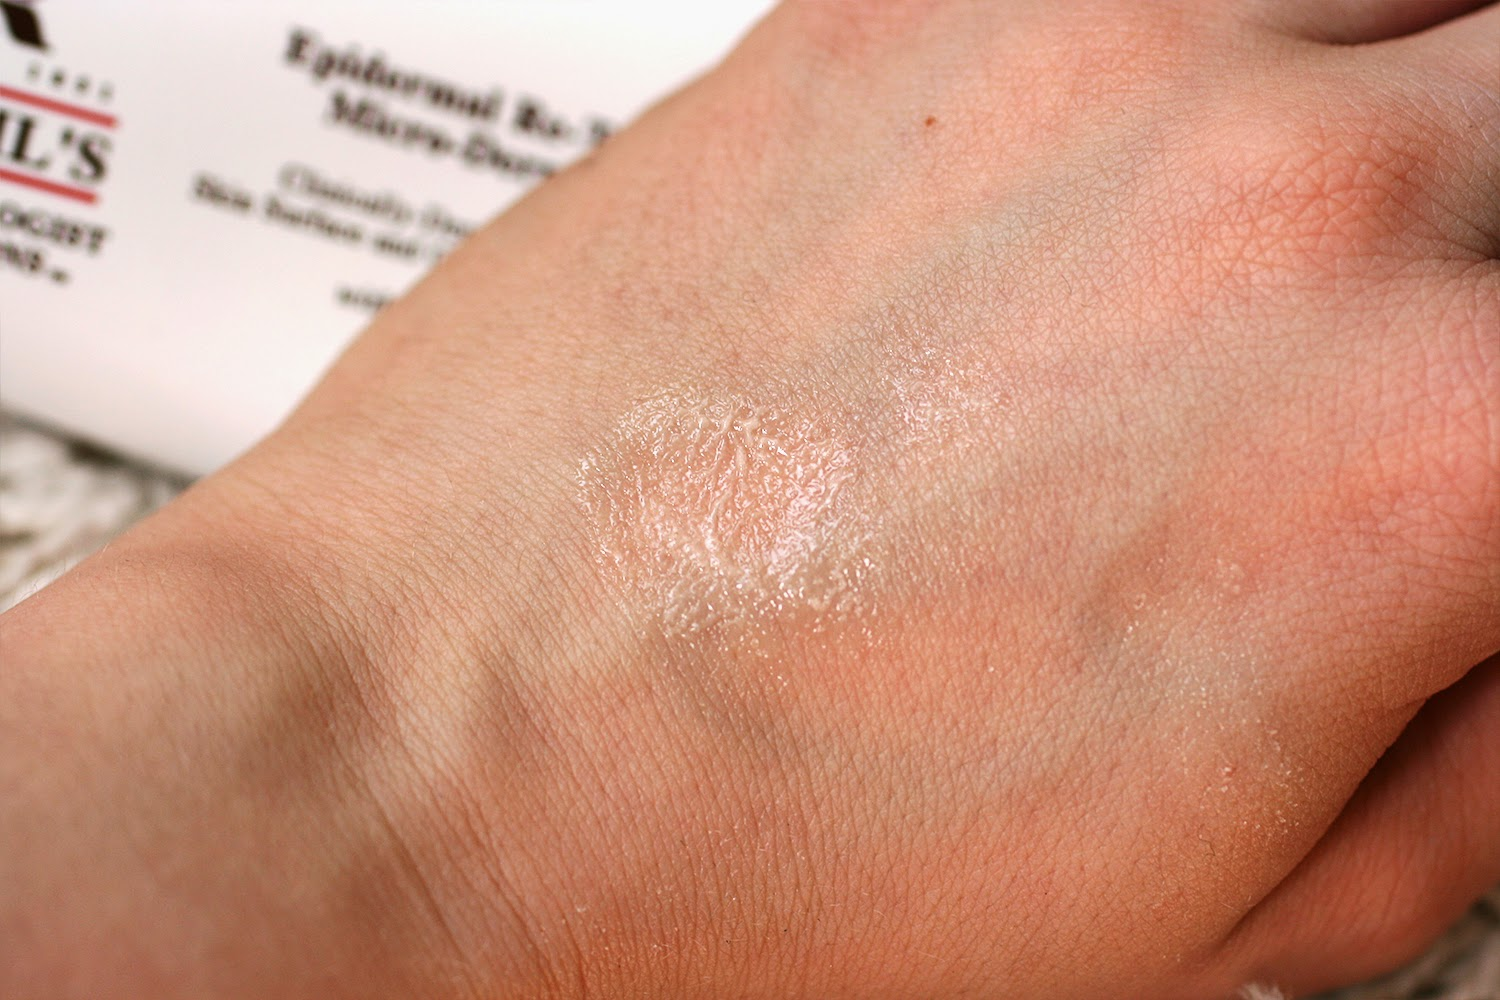 Kiehl's Epidermal Re-Texturizing Micro-Dermabrasion